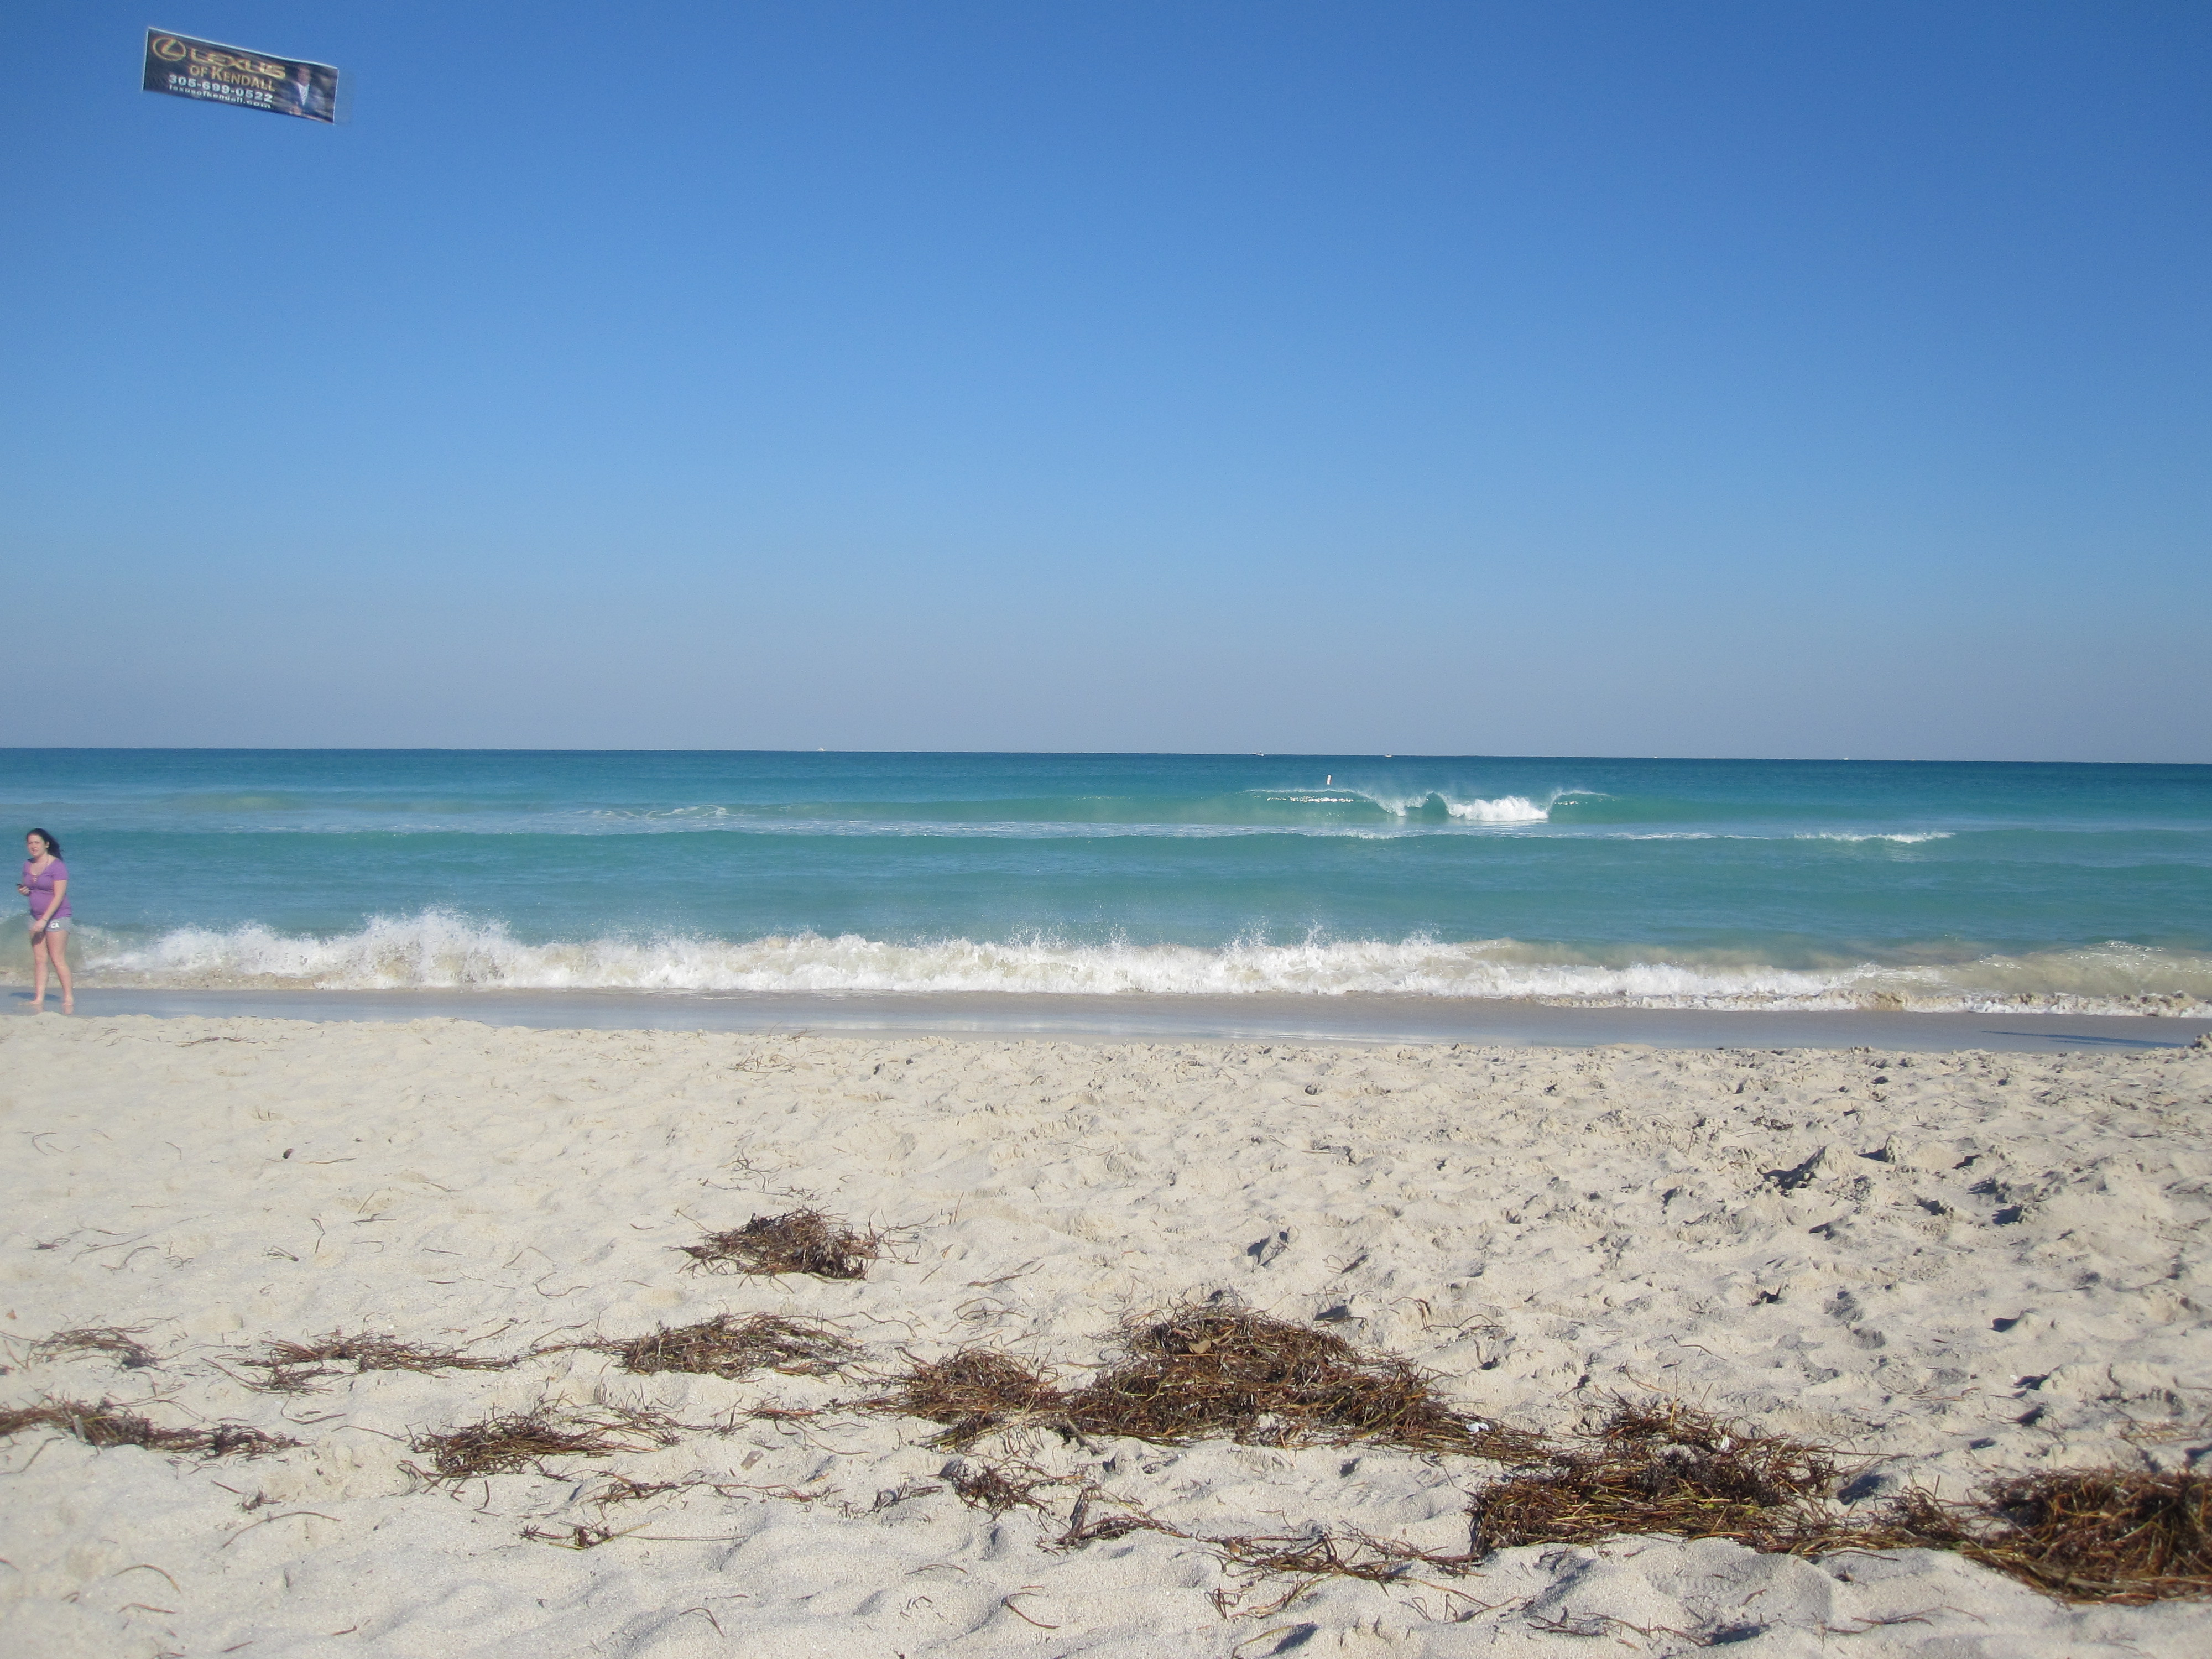 One last look at the beautiful Florida beach!